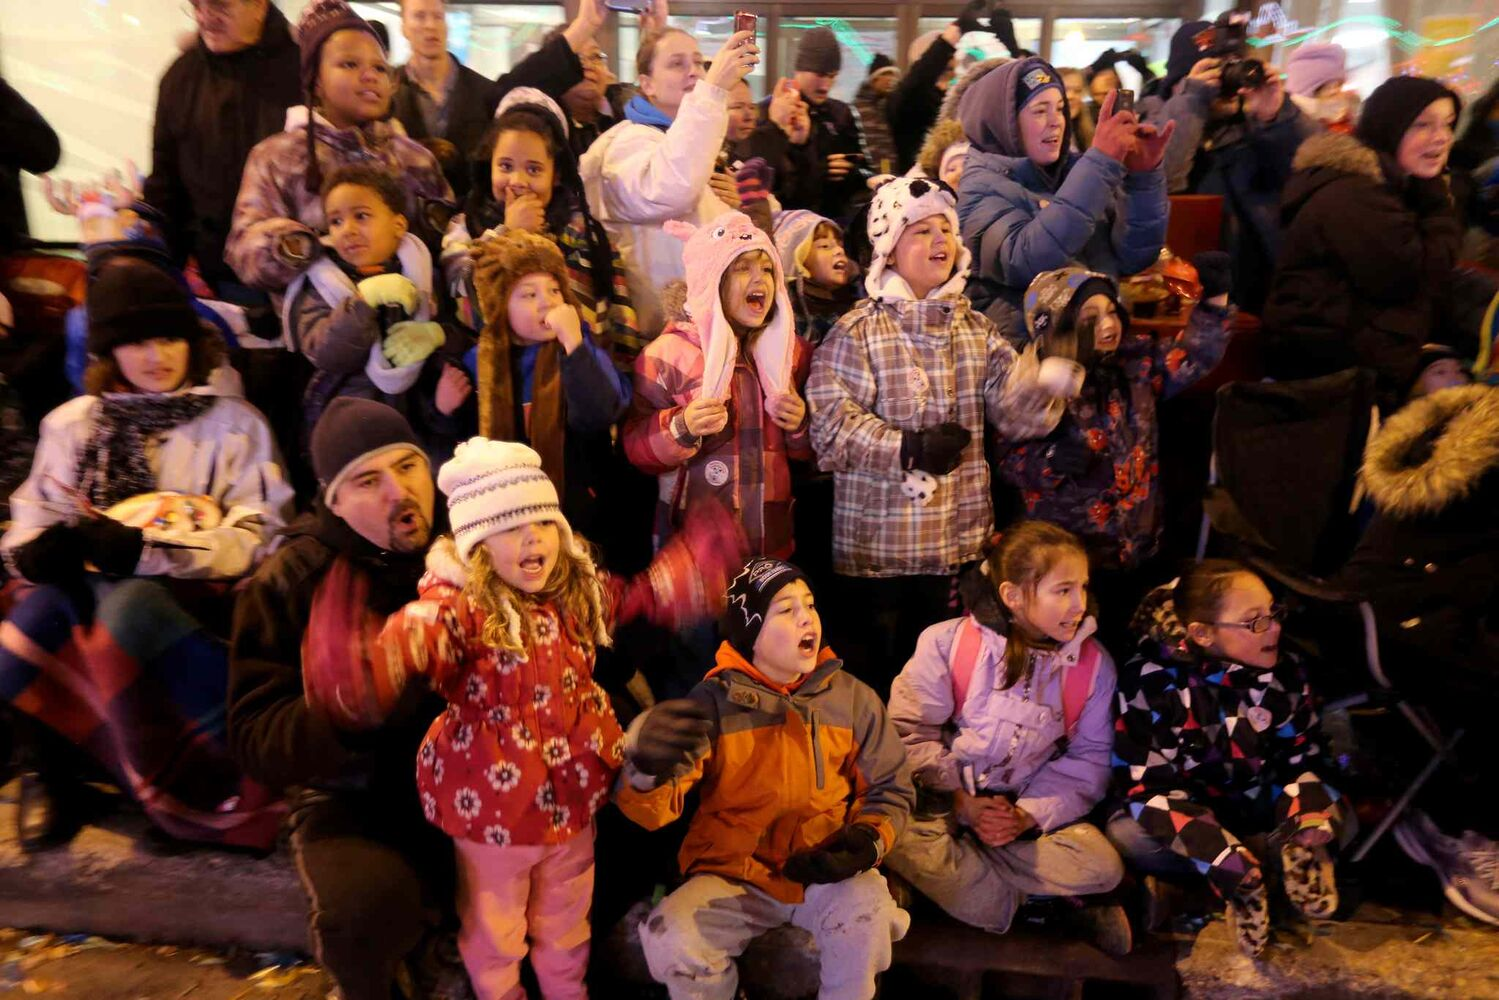 A group of adults and children wave at Santa as he passes by. (TREVOR HAGAN / WINNIPEG FREE PRESS)